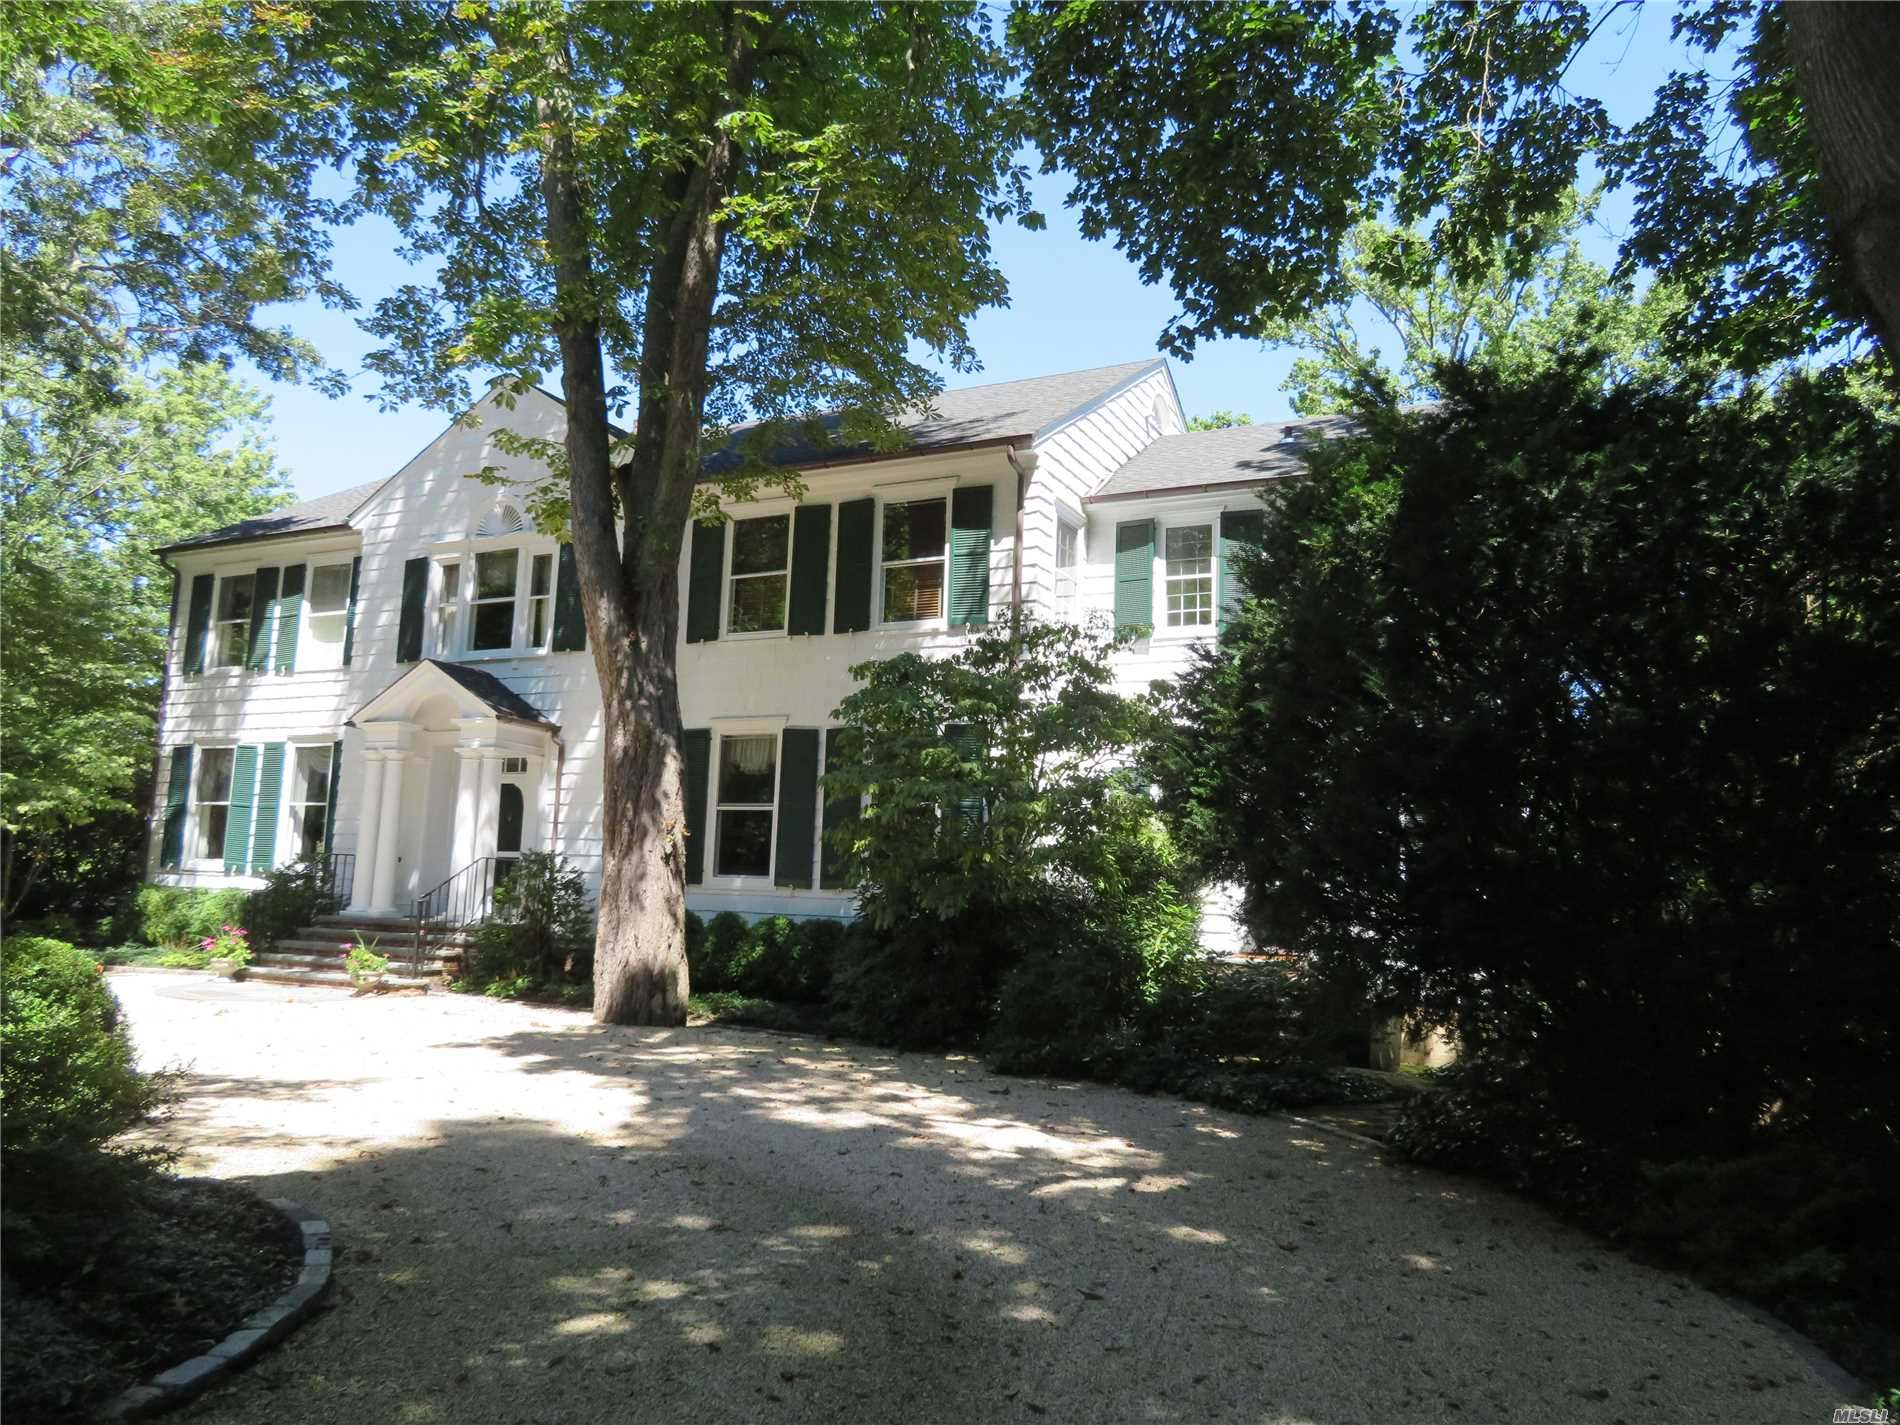 Fabulous Waterfront Colonial, Private Beach, Dock, Water Views From Most Of The Windows, Spacious And Bright.Cac, All Updated, Charming Kitchen And Breakfast Room. Surround Sound In All Rooms.